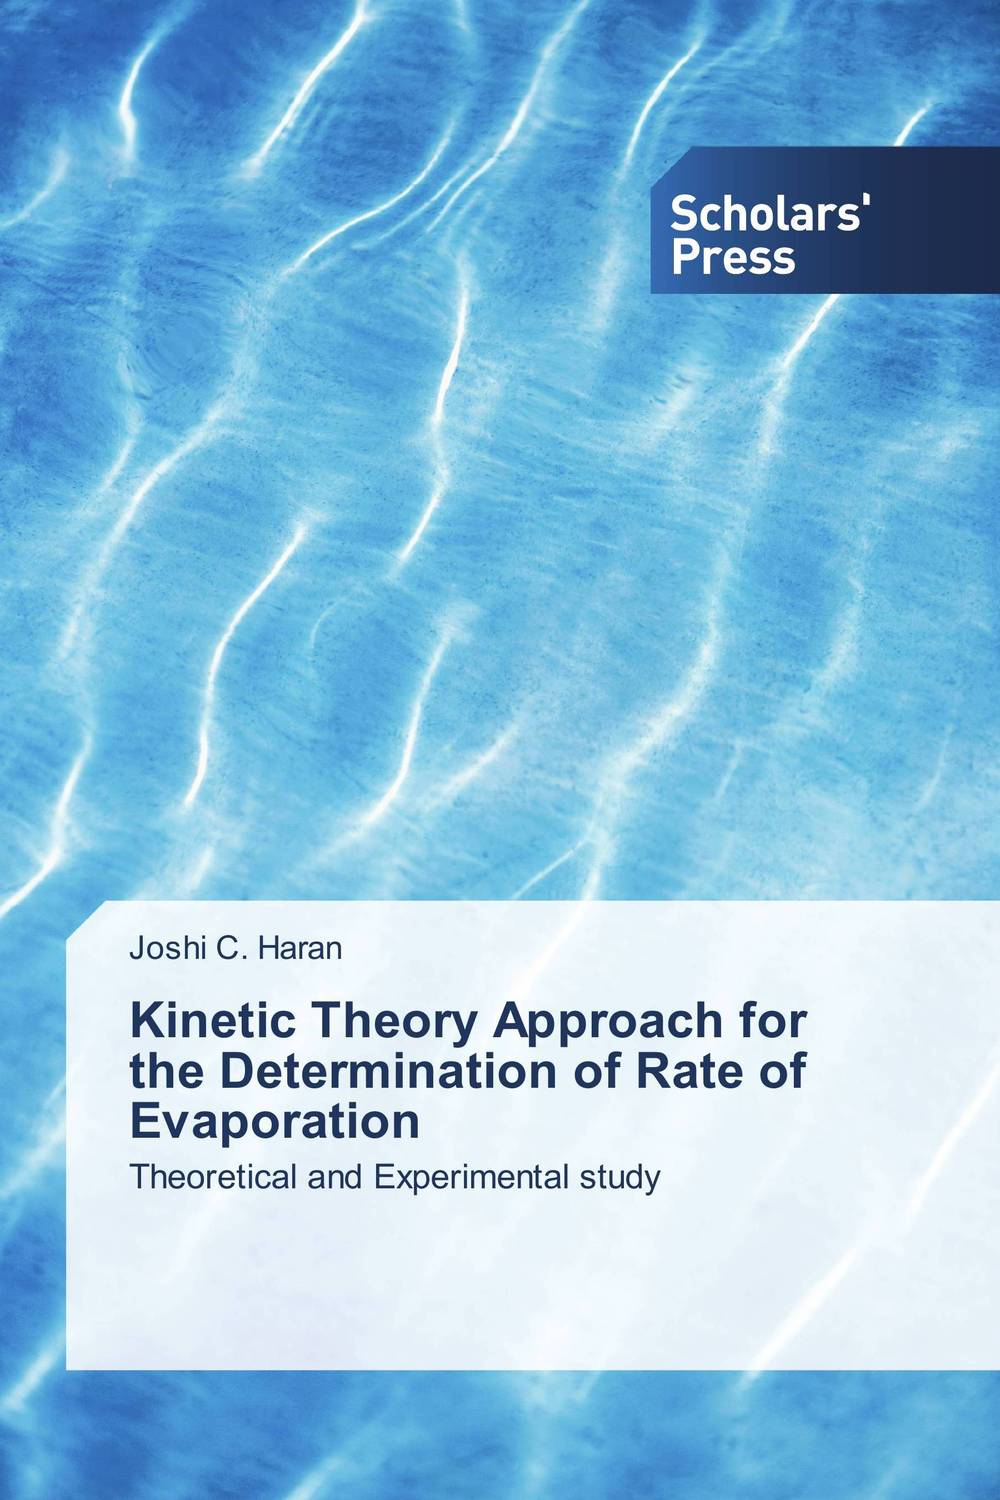 Kinetic Theory Approach for the Determination of Rate of Evaporation